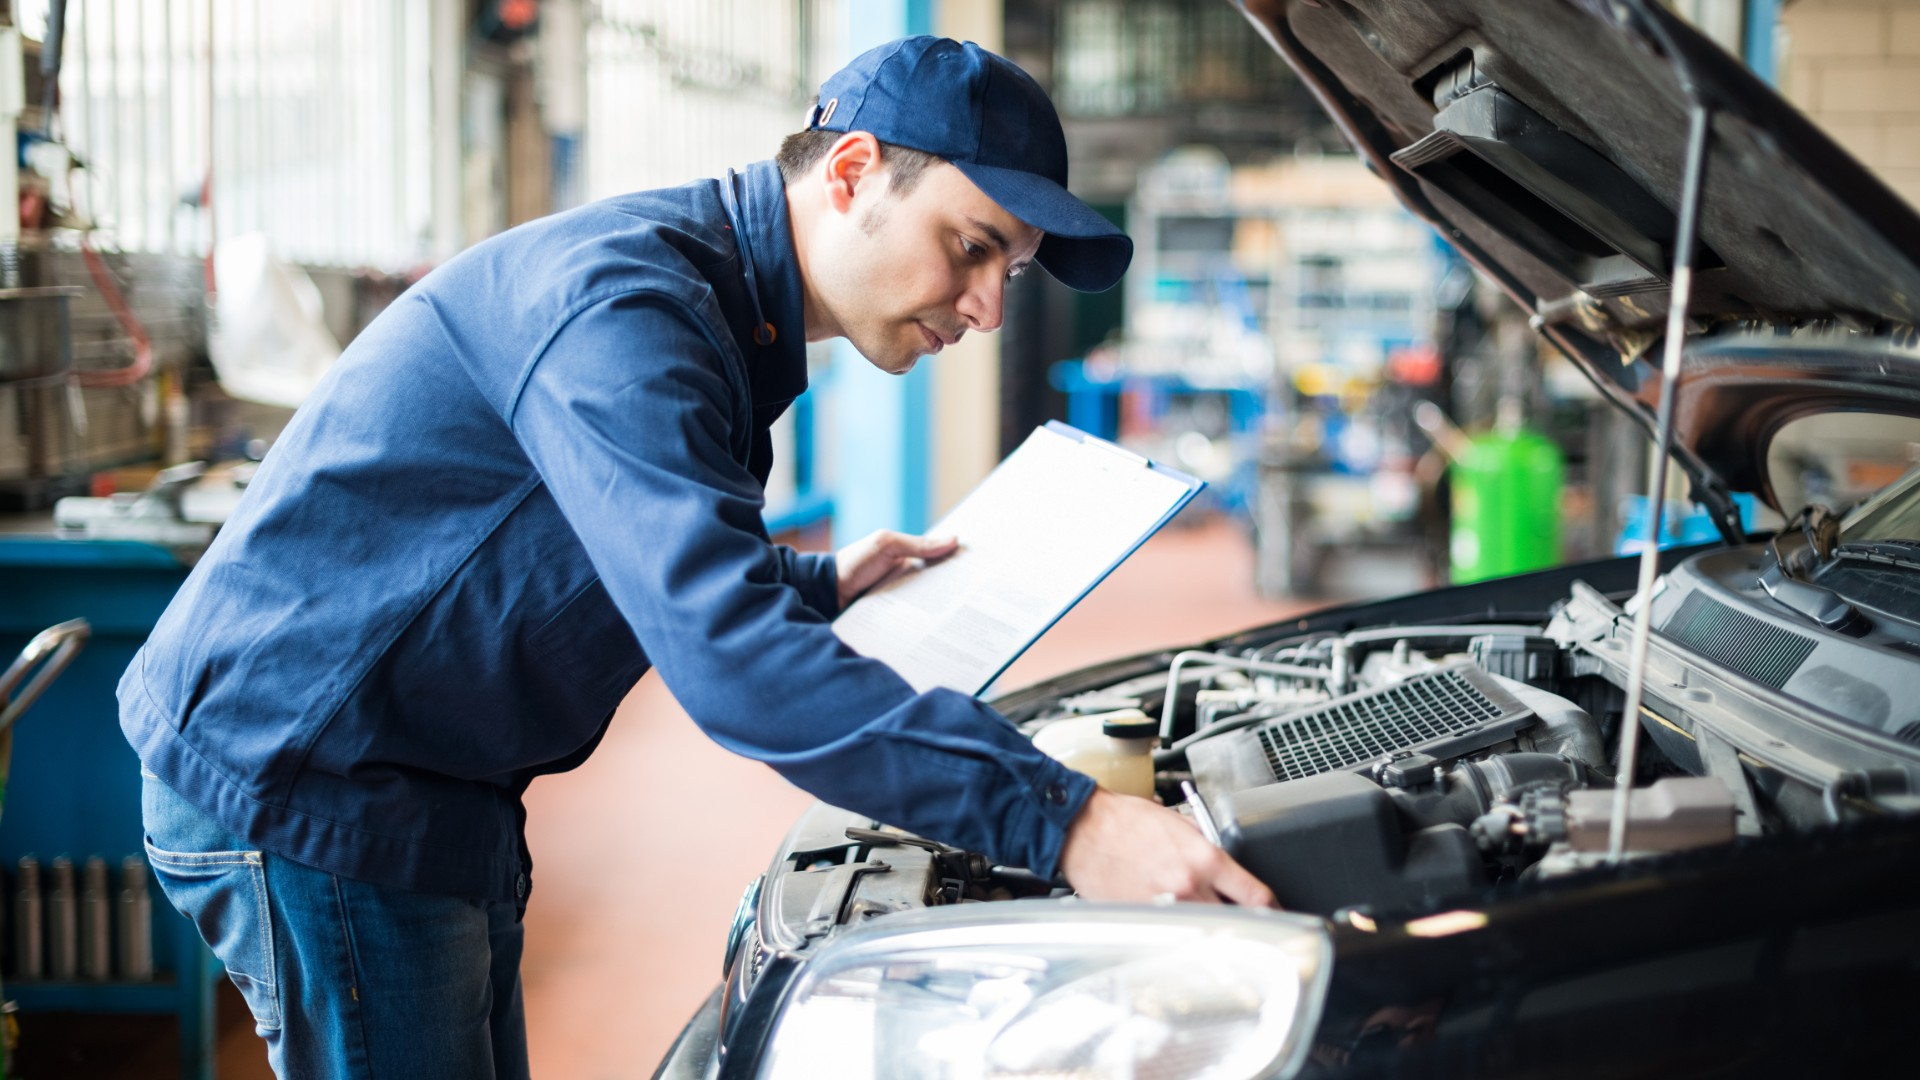 Emissions-related MOT failures DOUBLE since last year